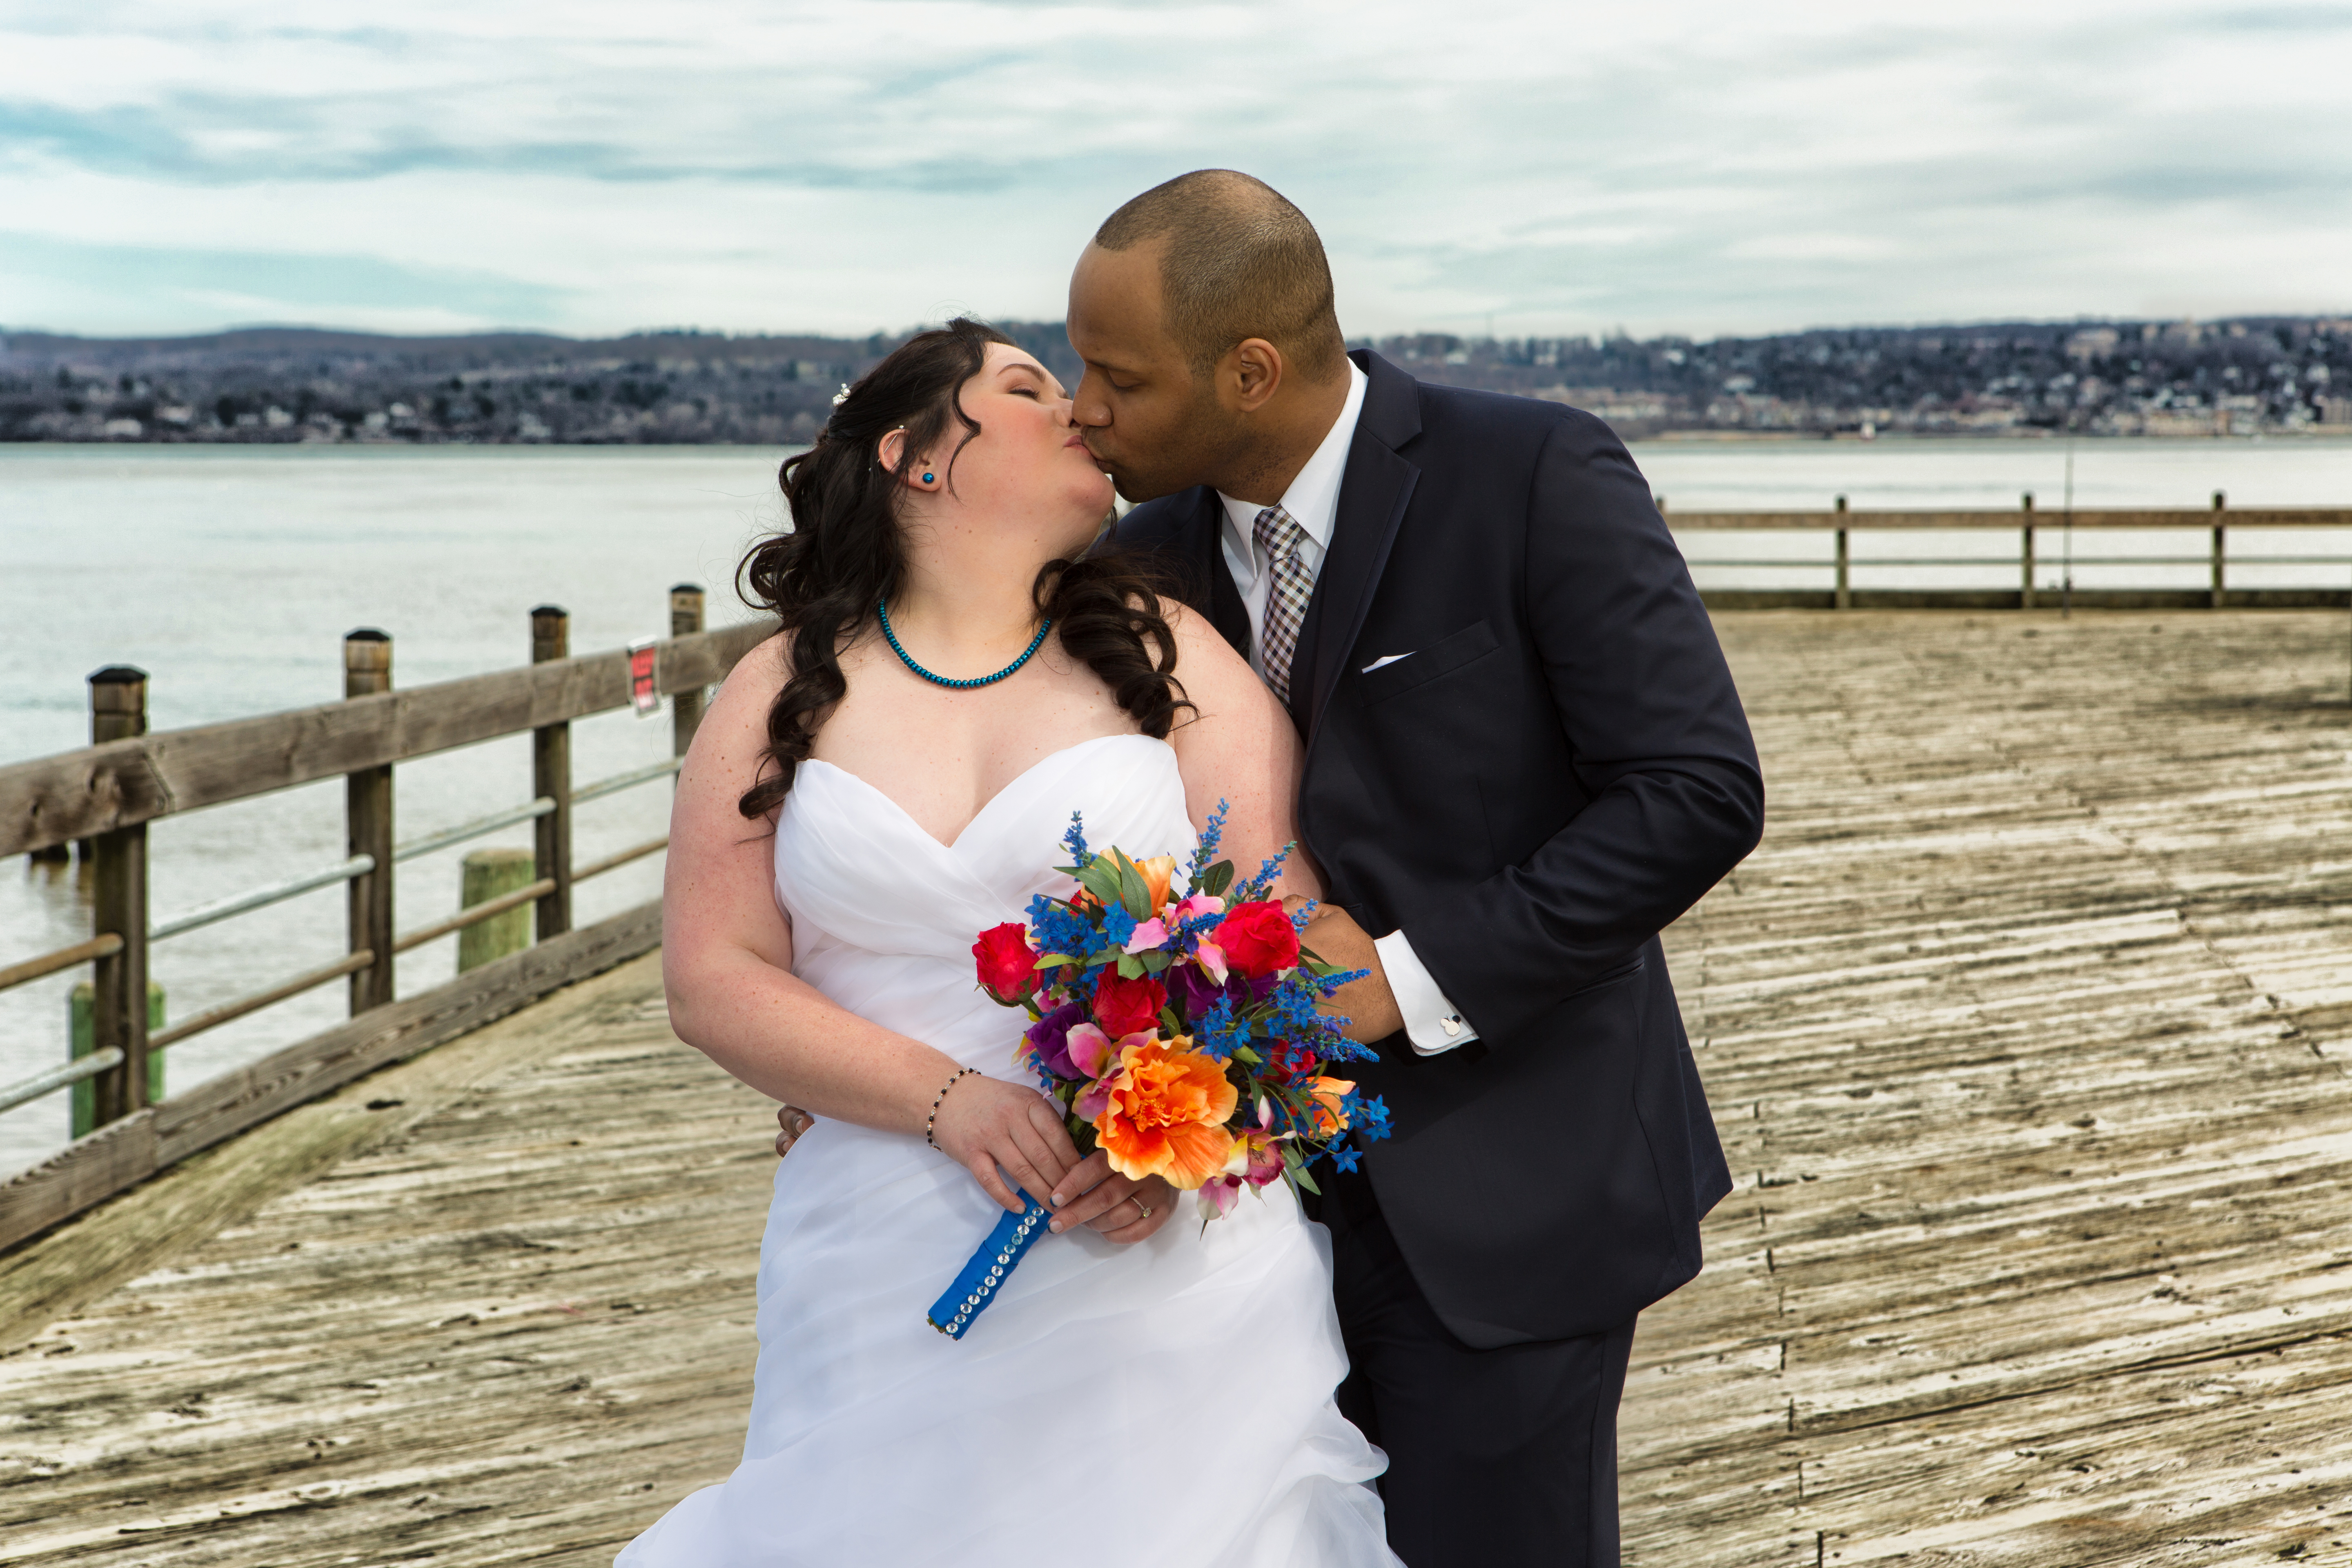 With Beautiful Spring Flowers in Hand, NY Bride Poses With Groom For Stunning Wedding Photos On the Water- The Nyack Seaport in Nyack, NY